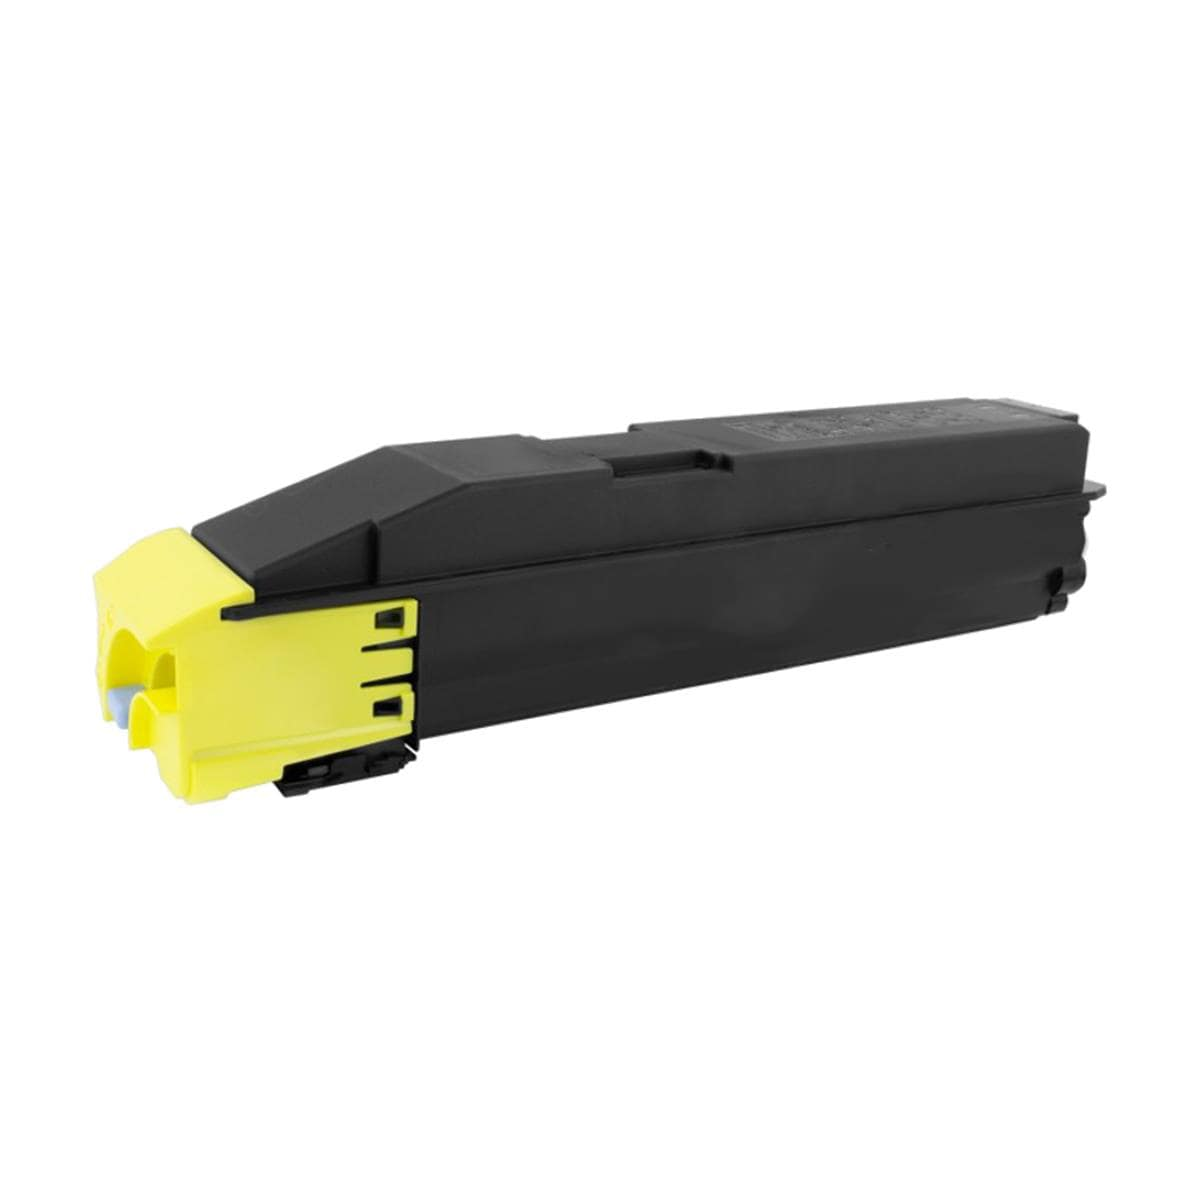 TK-8307Y Toner Cartridge - Kyocera Mita Compatible (Yellow)